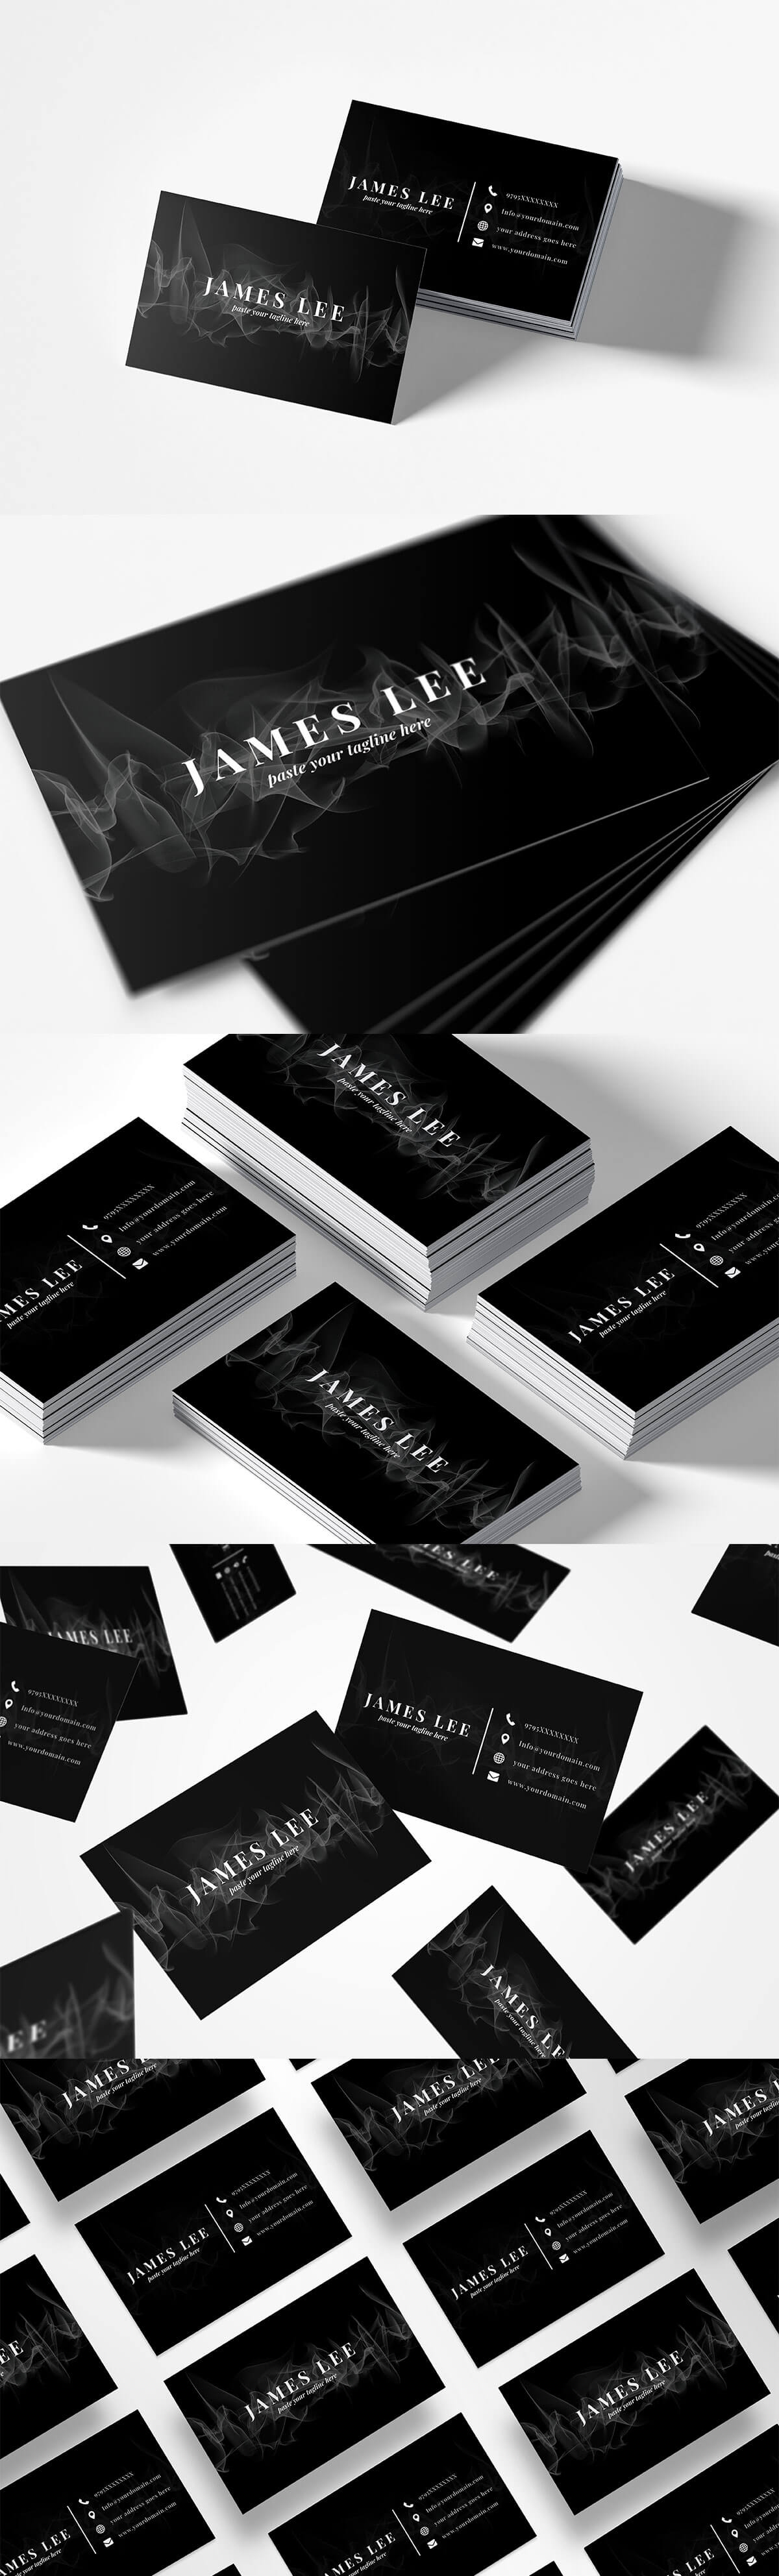 ElegantFree #Business #Card #Templateis an elegant template. It comes with 2 PSD files with built-in smart object feature in CMYK color mode at 300 DPI resolution.